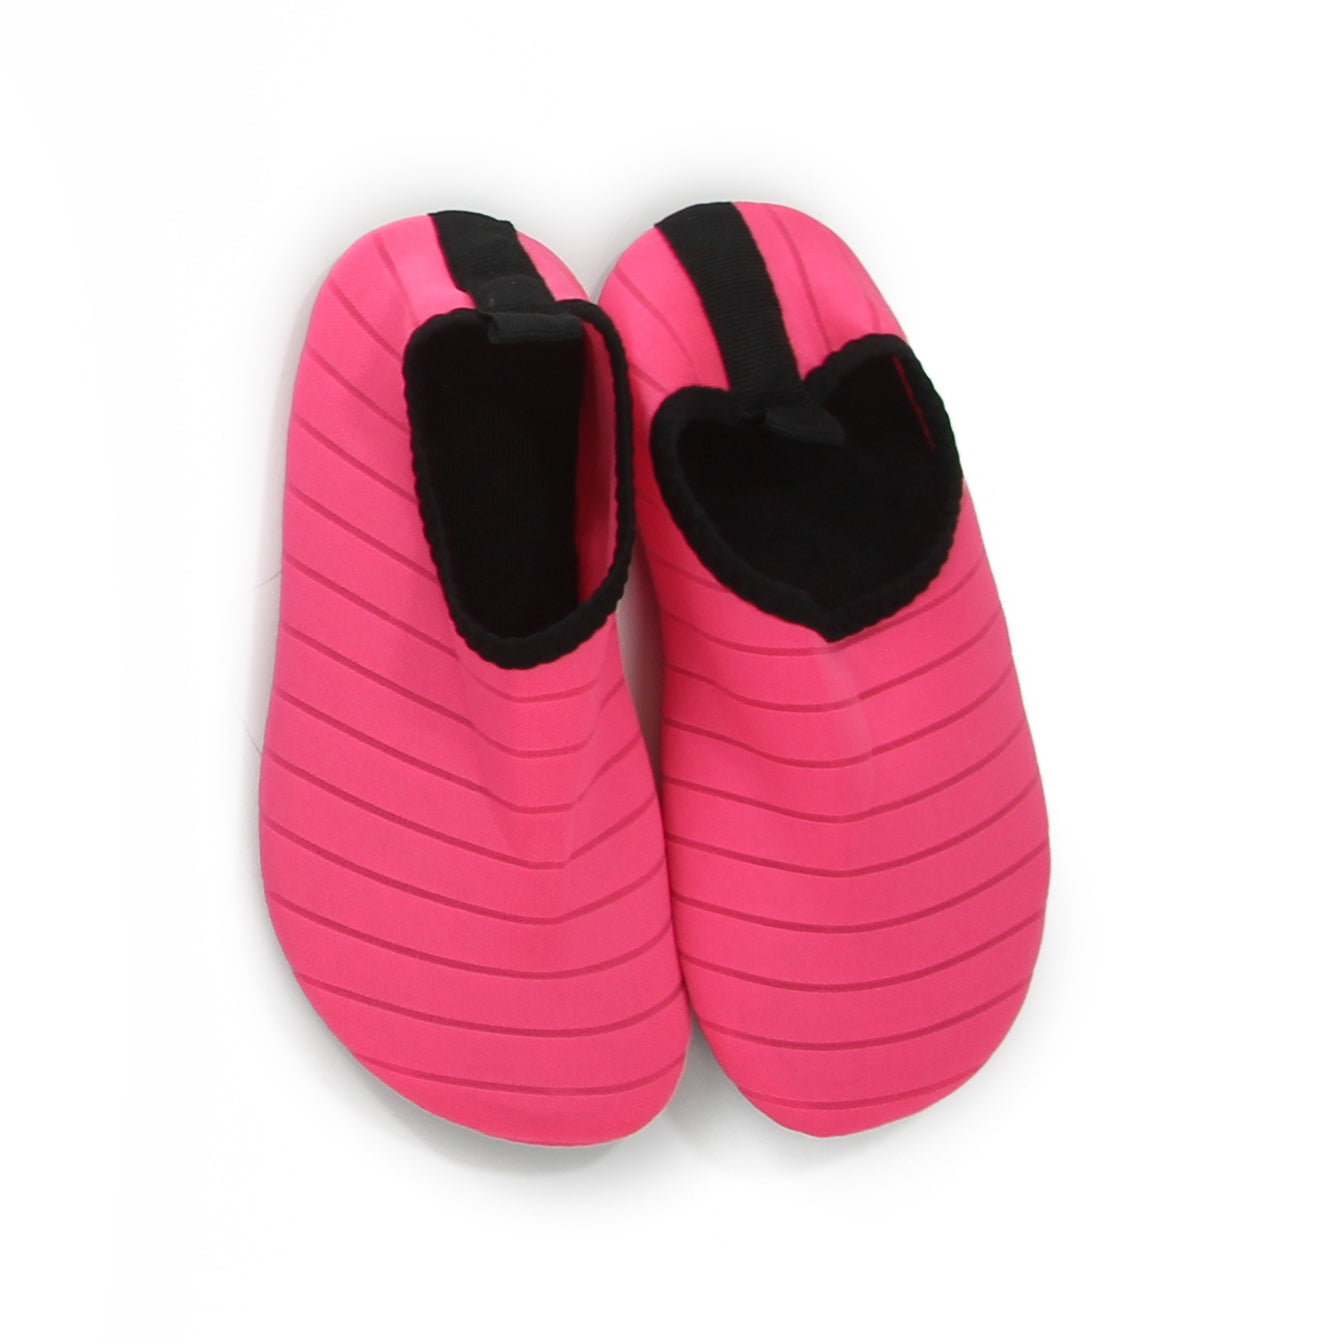 Lightweight Slip Resistant Water Shoes - Mouche Kids